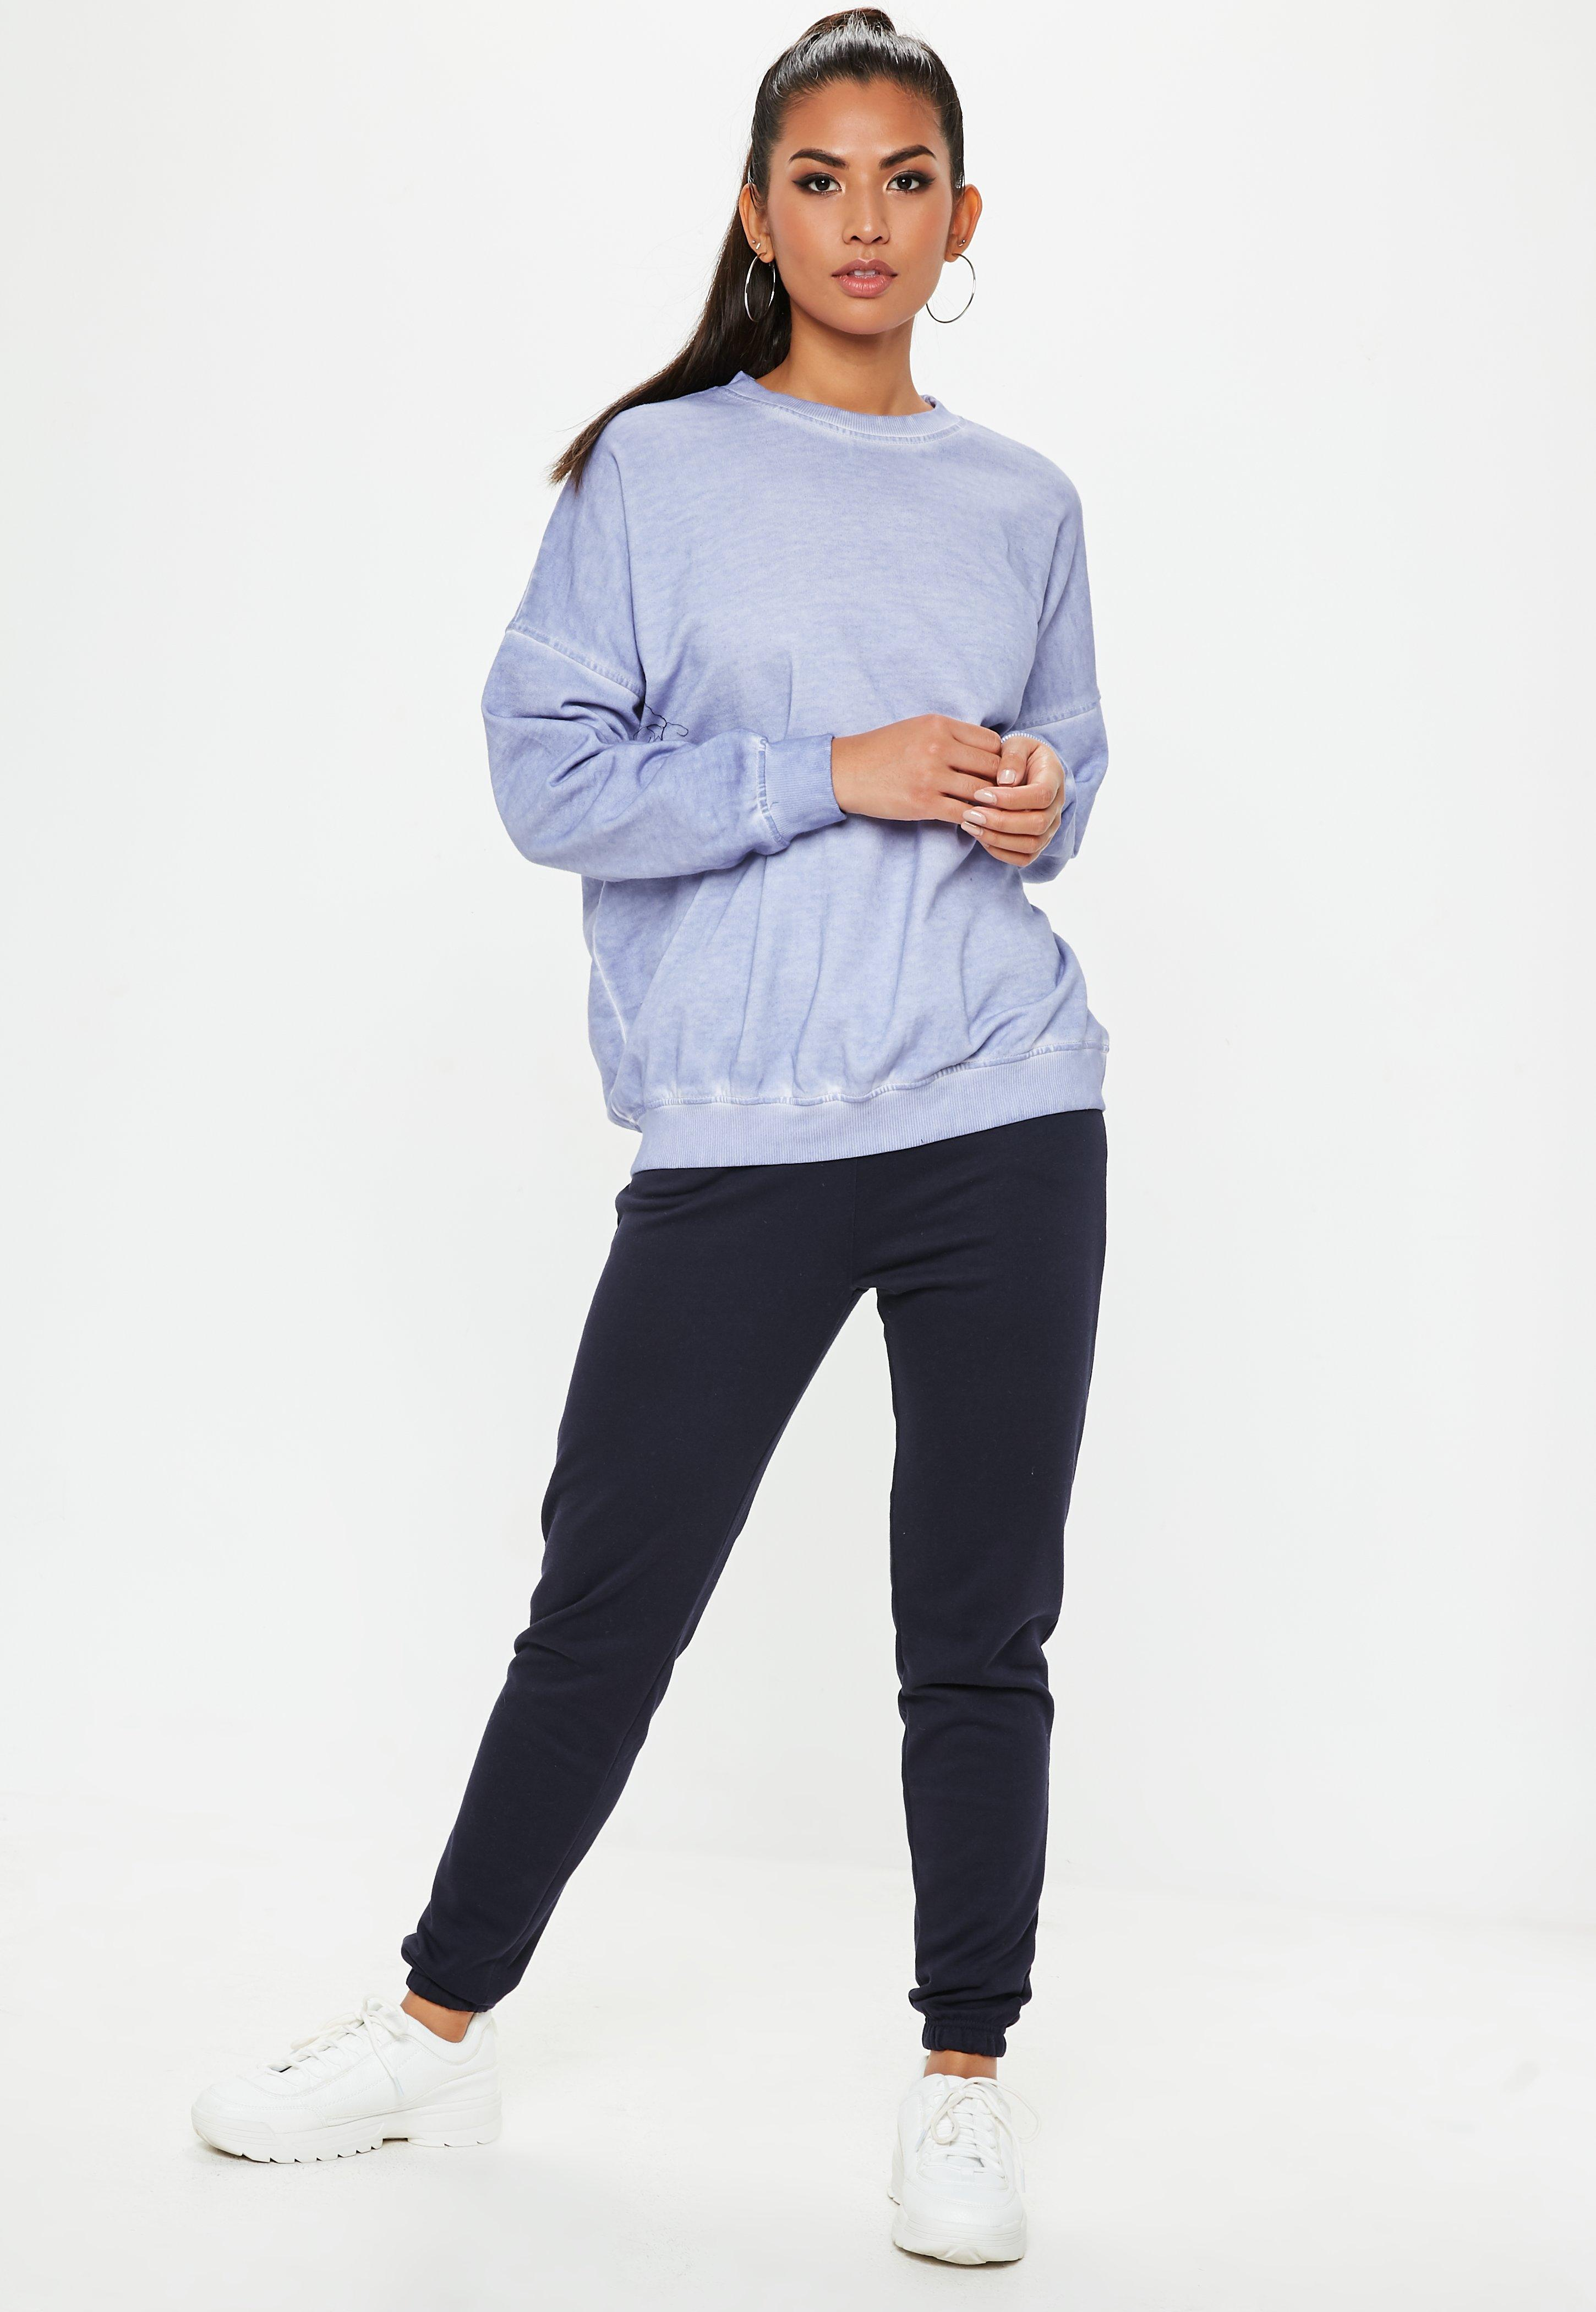 Missguided Washed Out Oversized Sweatshirt Release Dates Cheap Price Limit Offer Cheap Sale Good Selling Cheapest Explore Sale Online IDWcHwP5lF